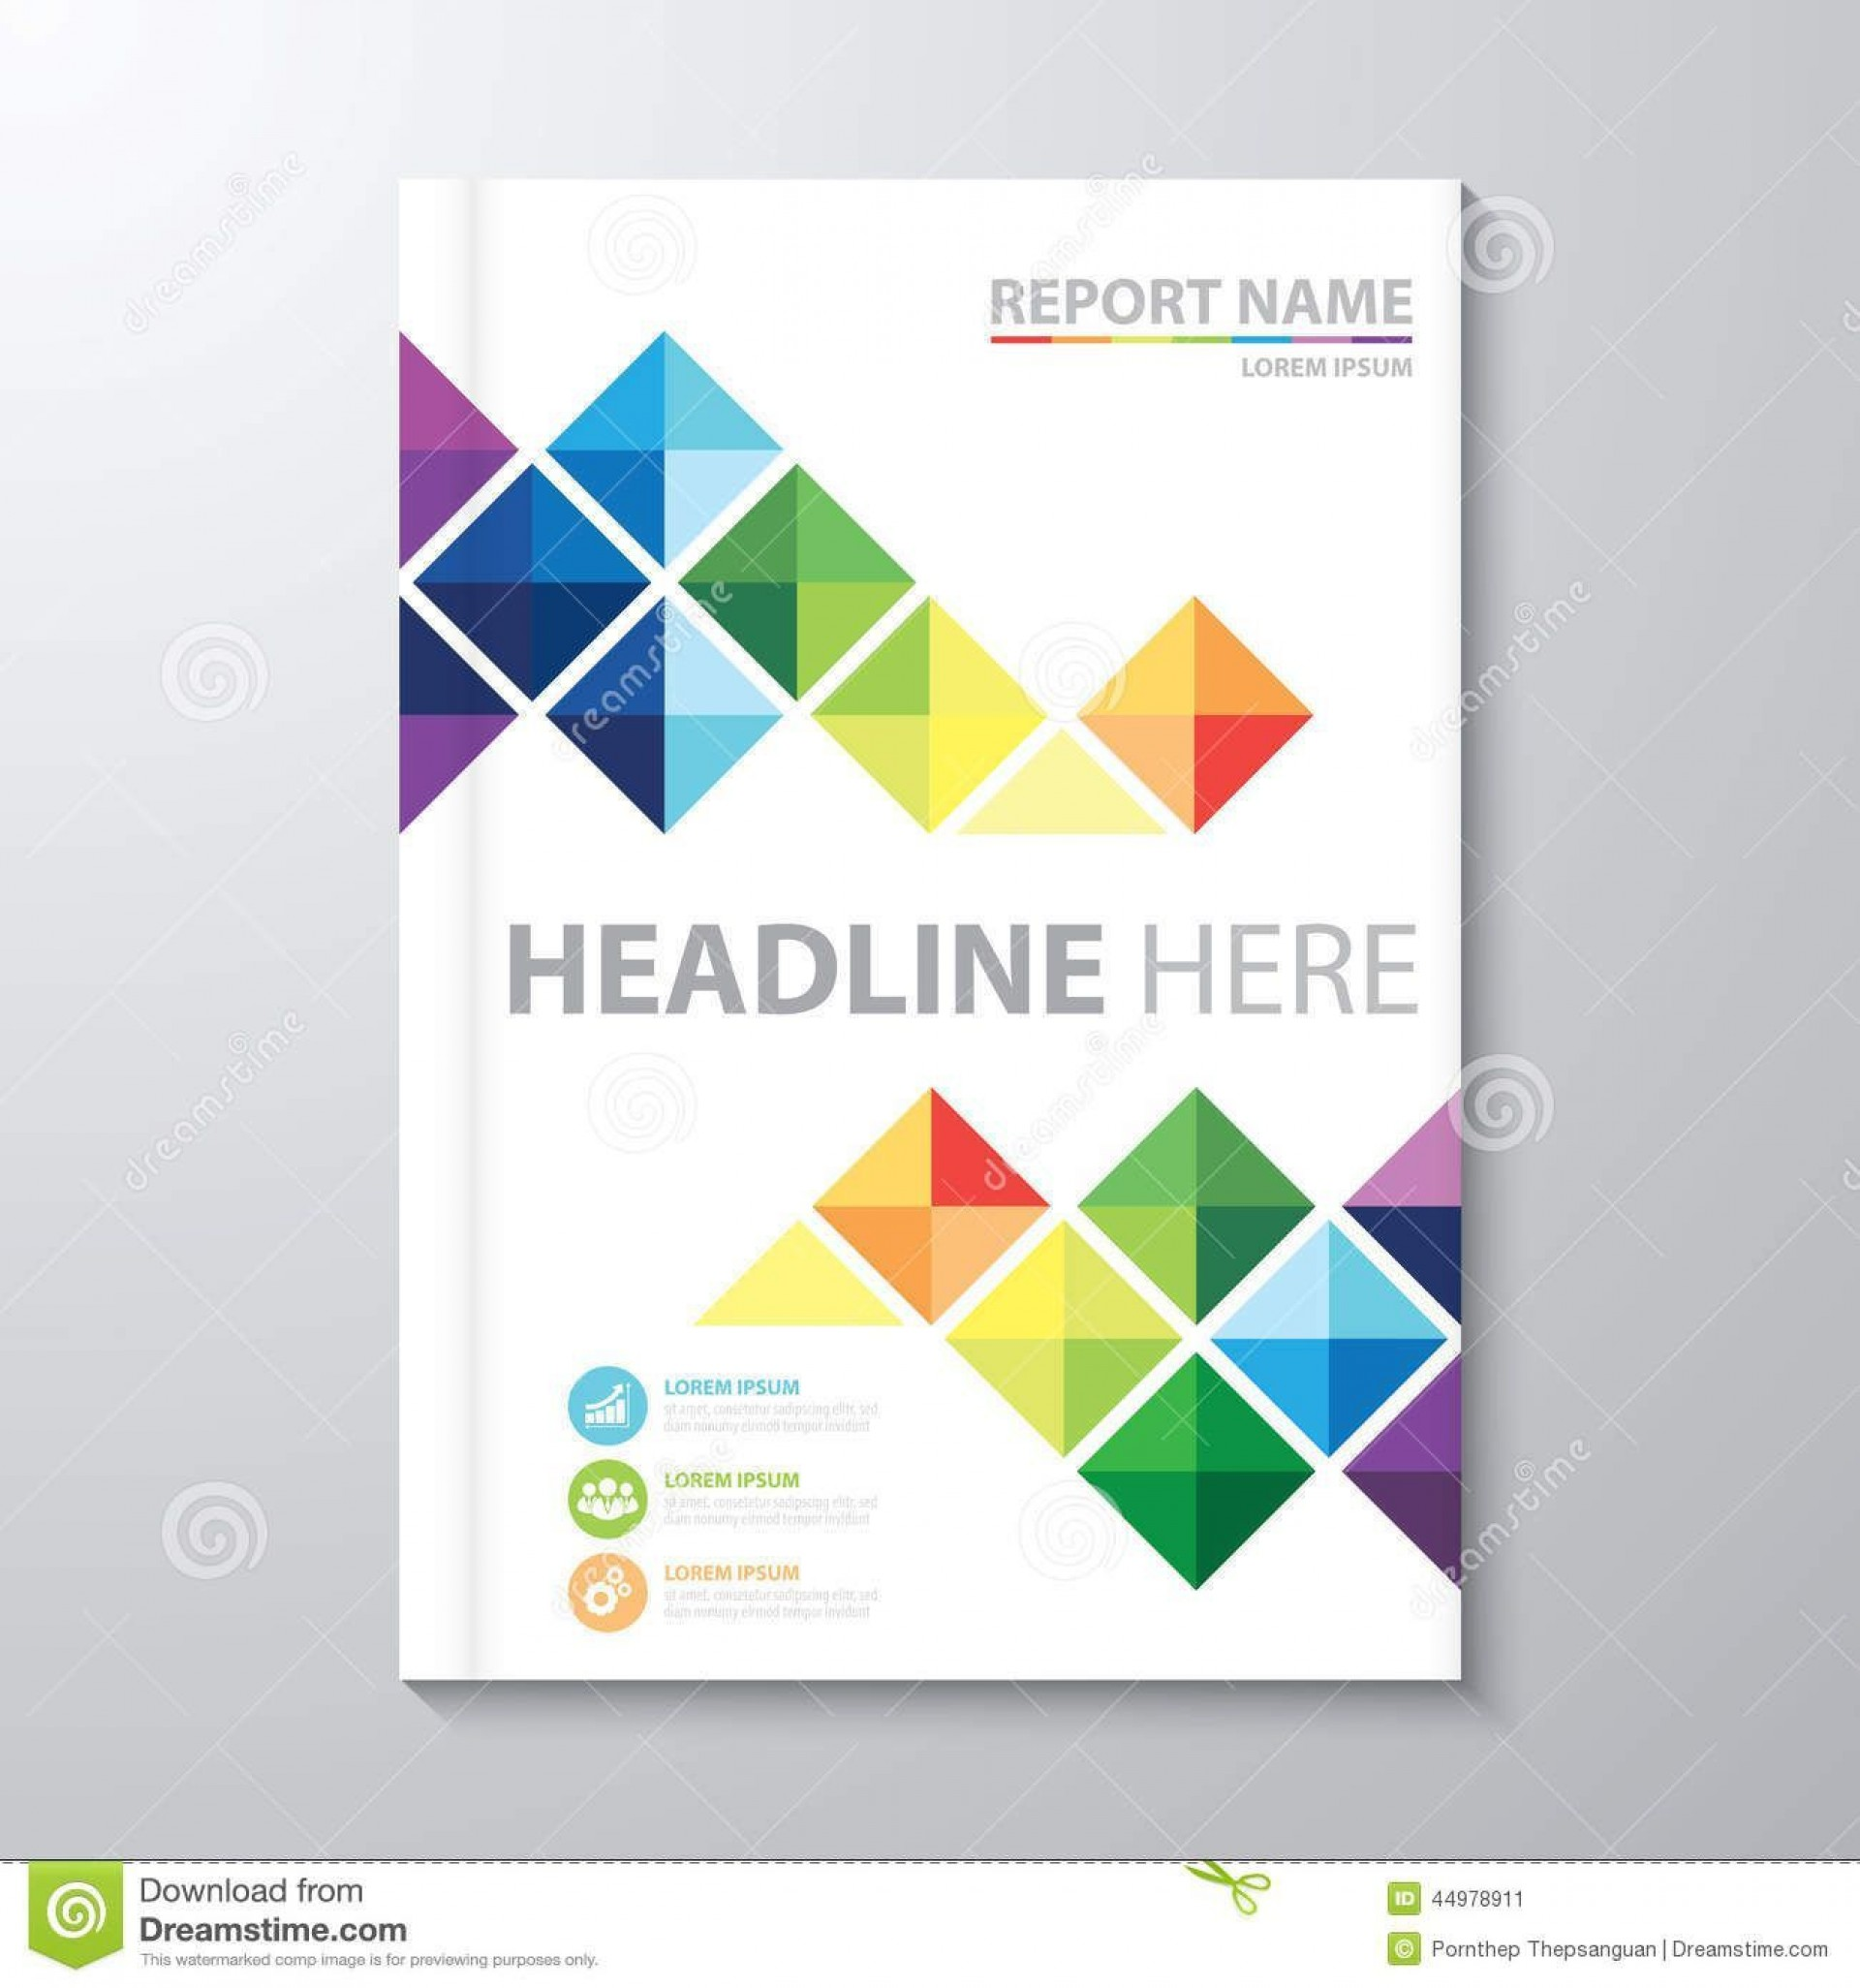 001 Incredible Free Download Annual Report Cover Design Template Example  In Word Page1920